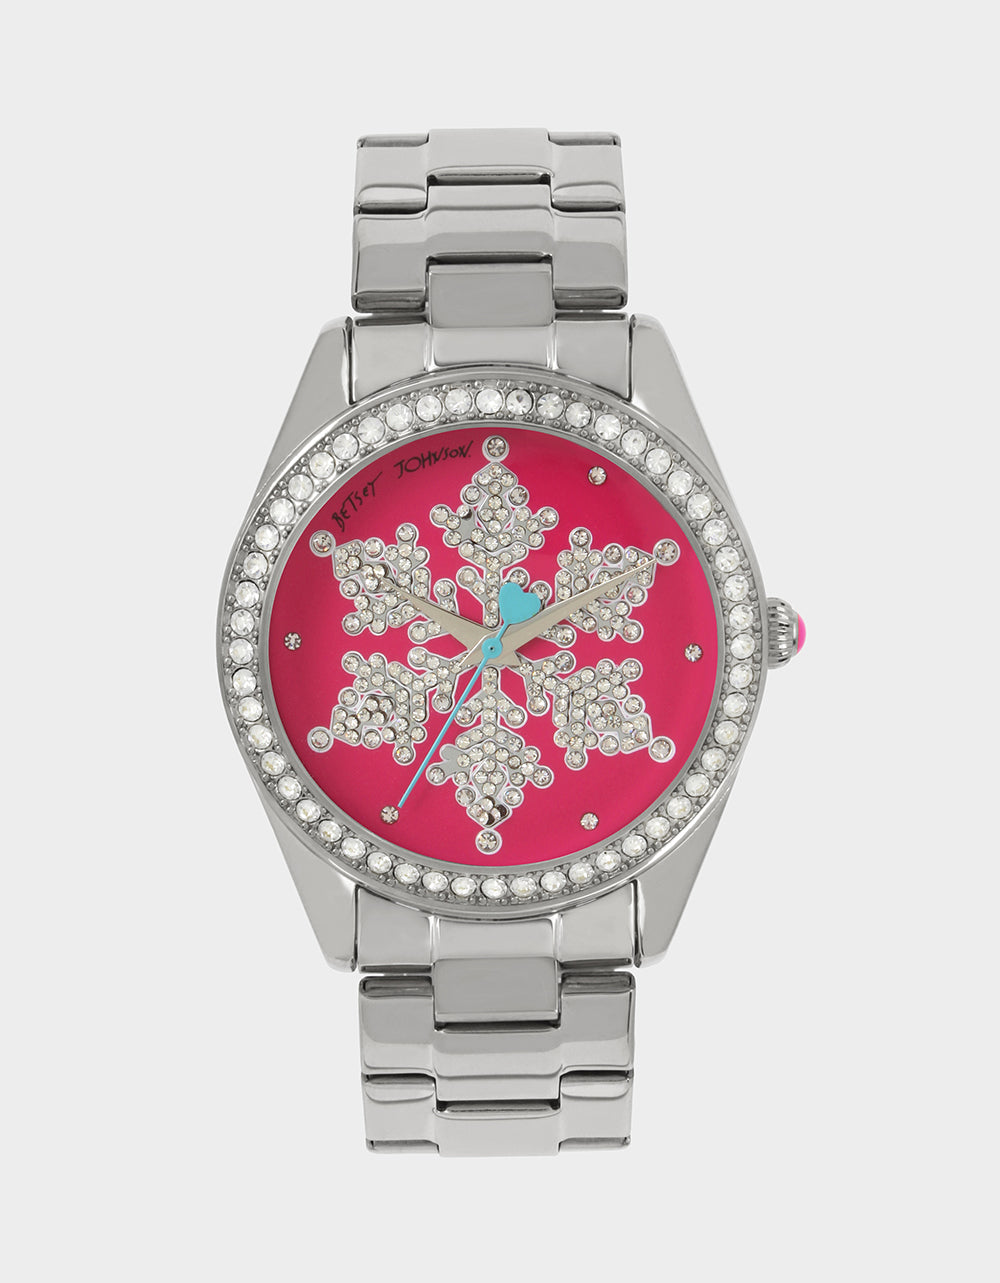 SNOWFLAKE SEASON PINK WATCH PINK - JEWELRY - Betsey Johnson